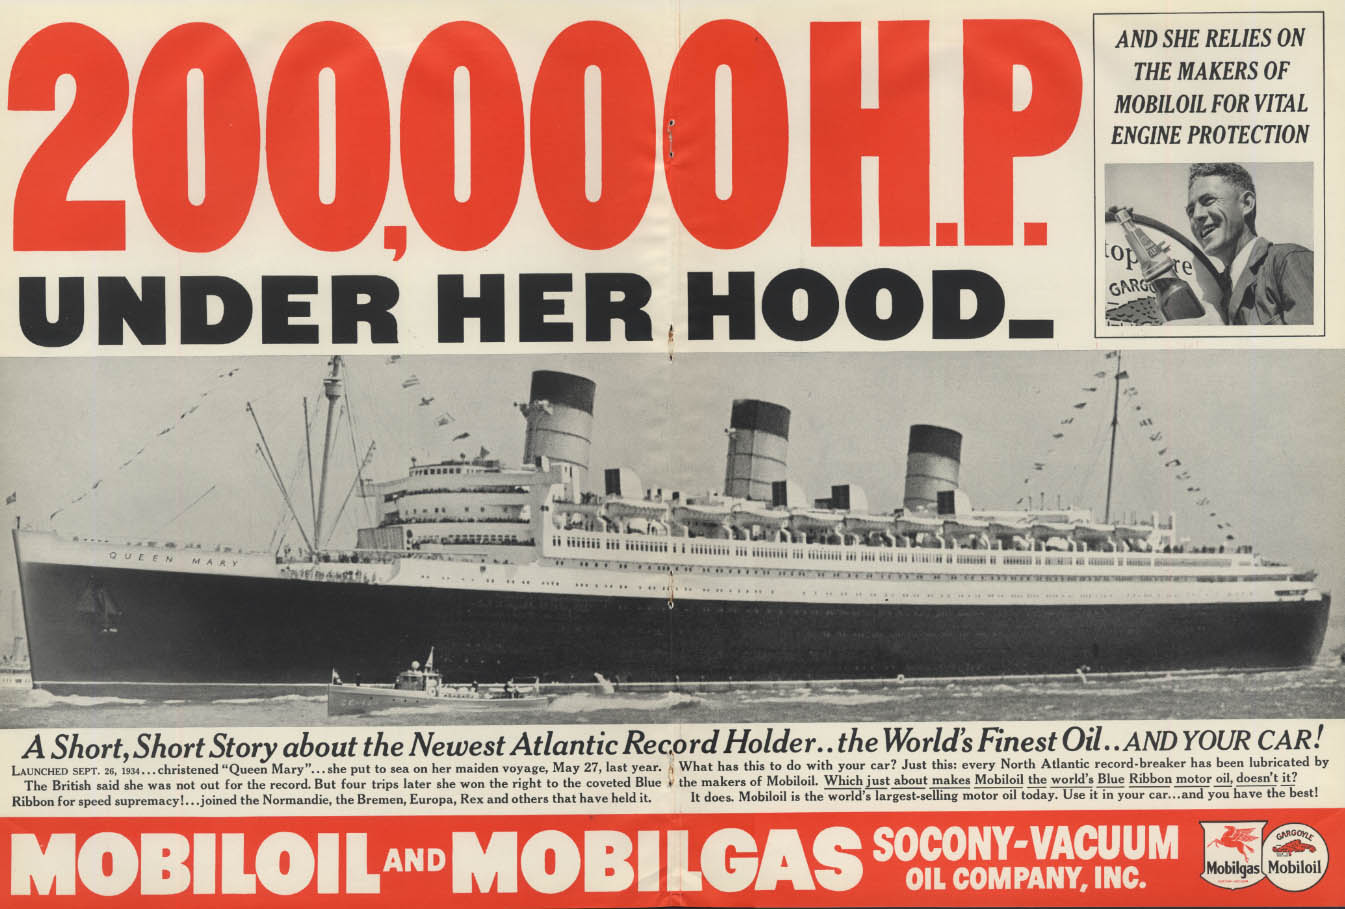 200,000 HP under the hood Cunard R M S Queen Mary Mobiloil ad 1937